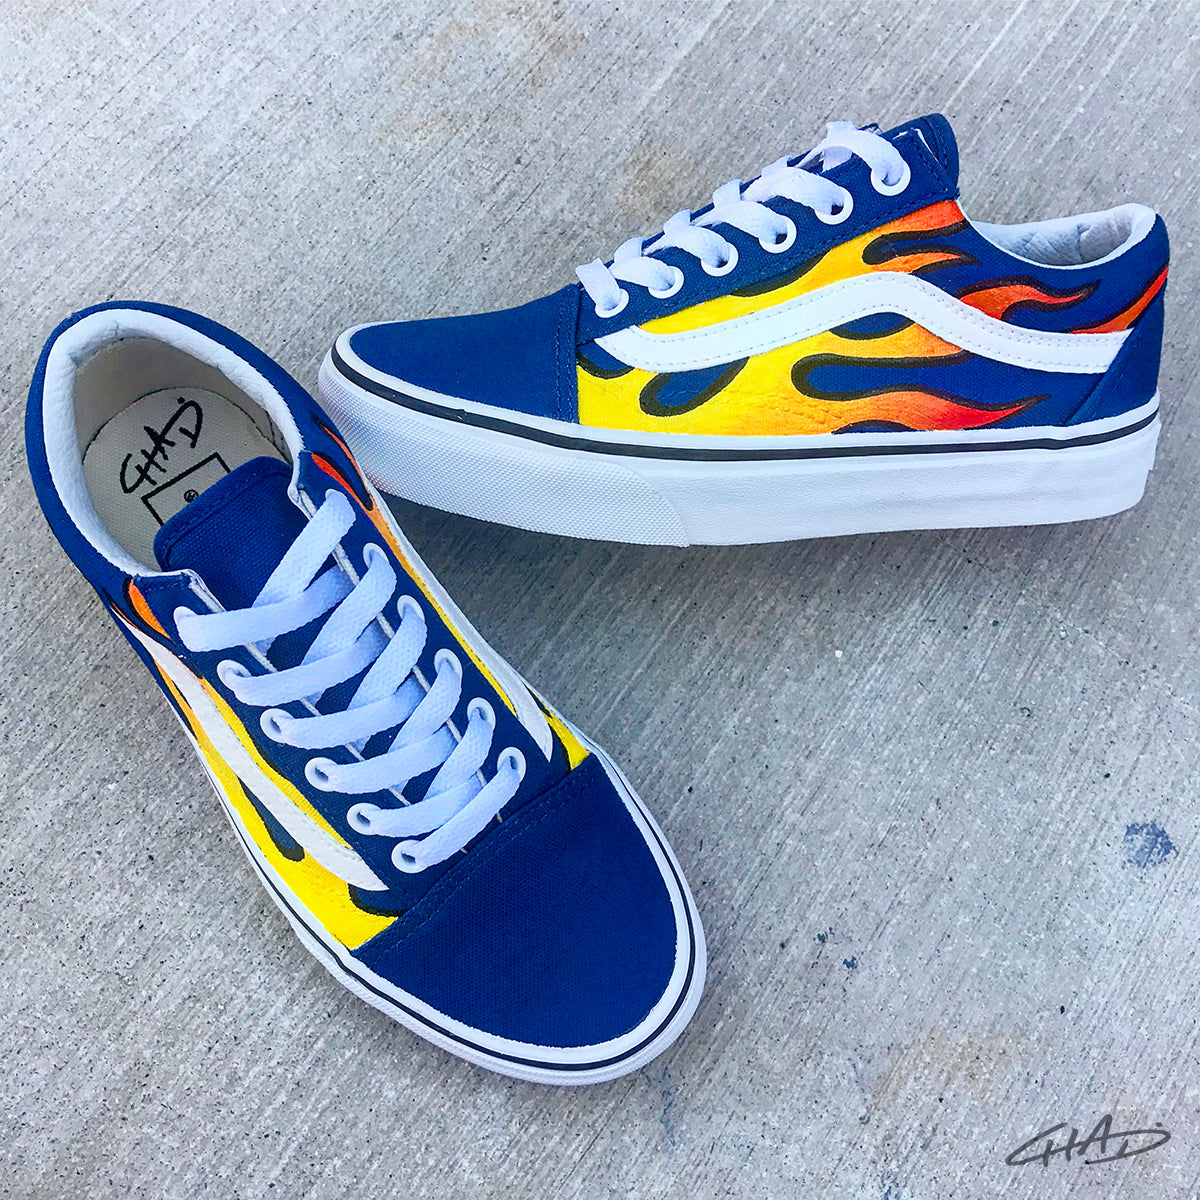 Flames Hand Painted Vans Authentics Shoes